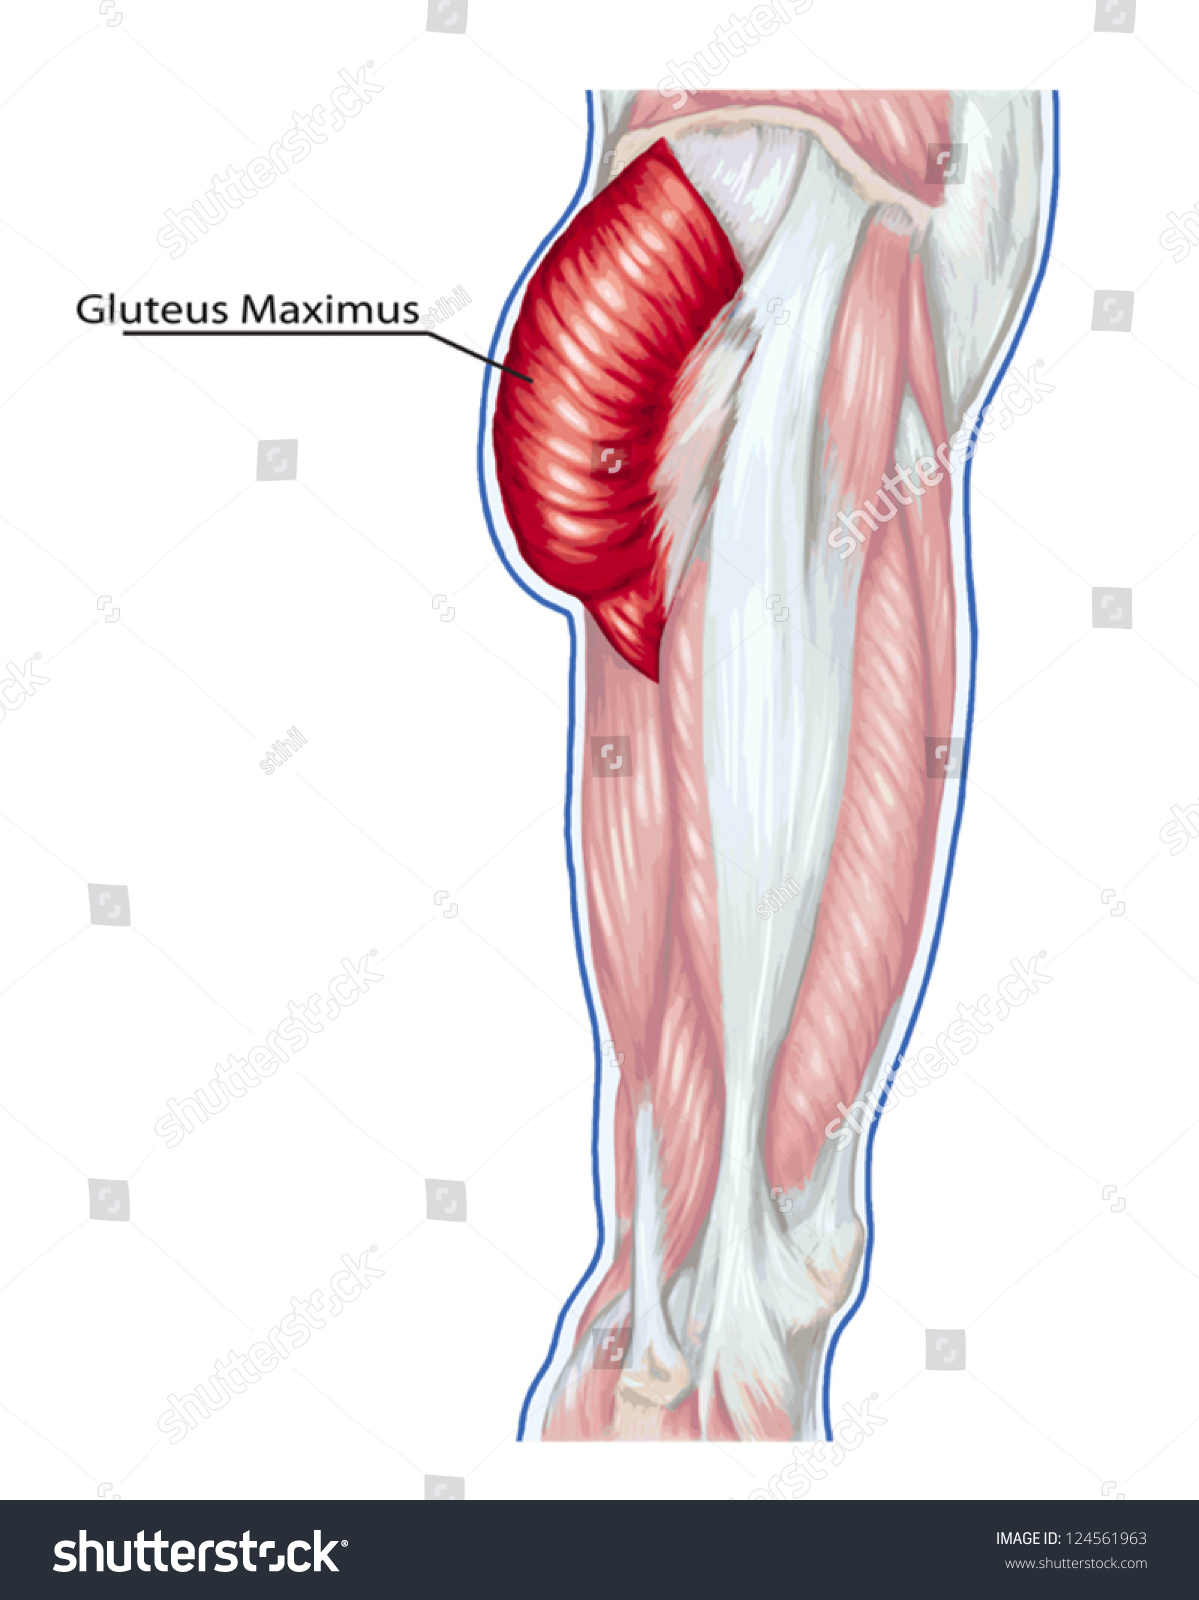 gluteus maximus didactic board anatomy leg stock vector 124561963, Muscles